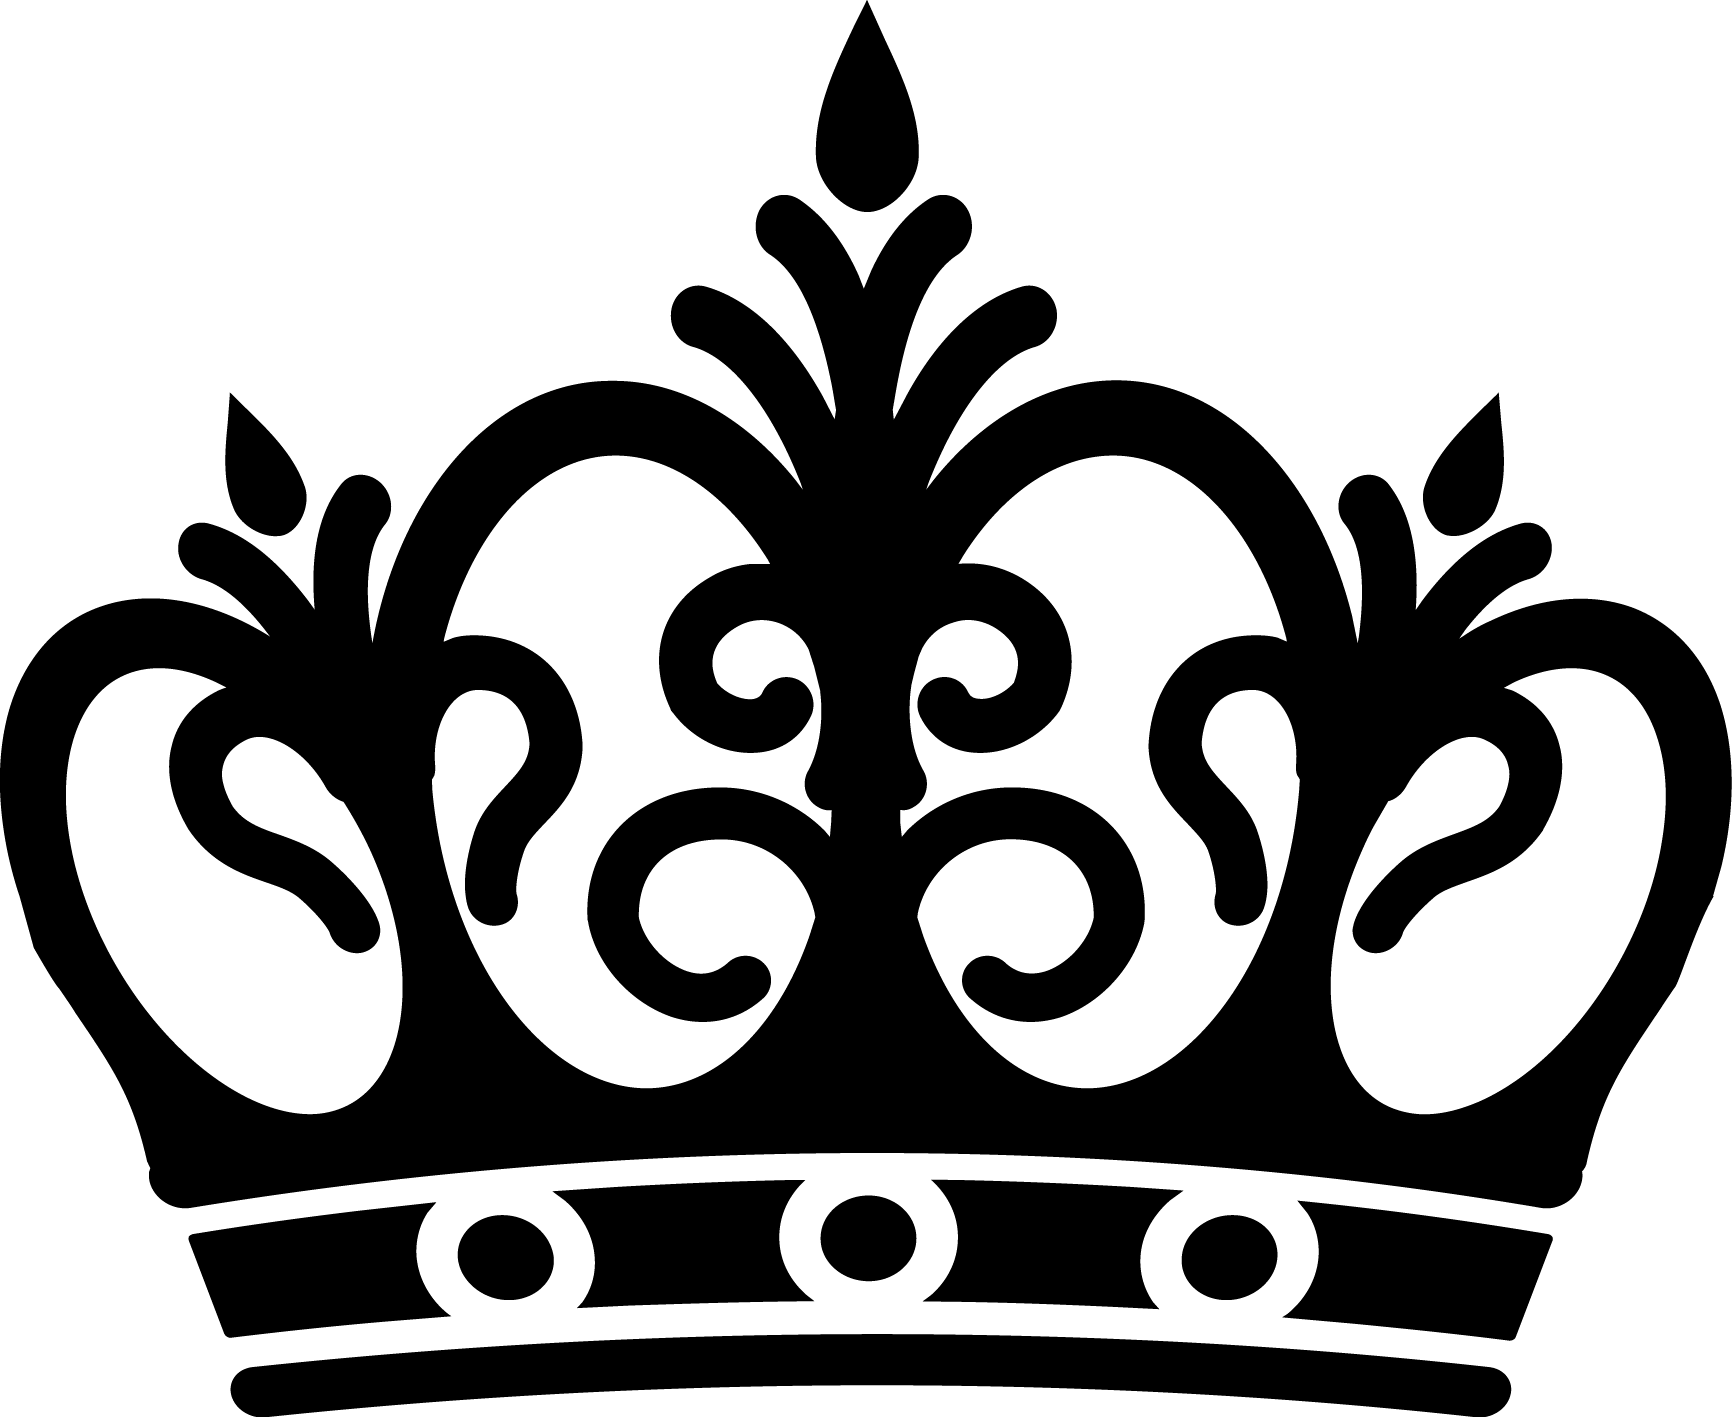 Kings crown clipart black and white freeuse crown vector png - Buscar con Google | Tatuajes | Pinterest | Crown ... freeuse